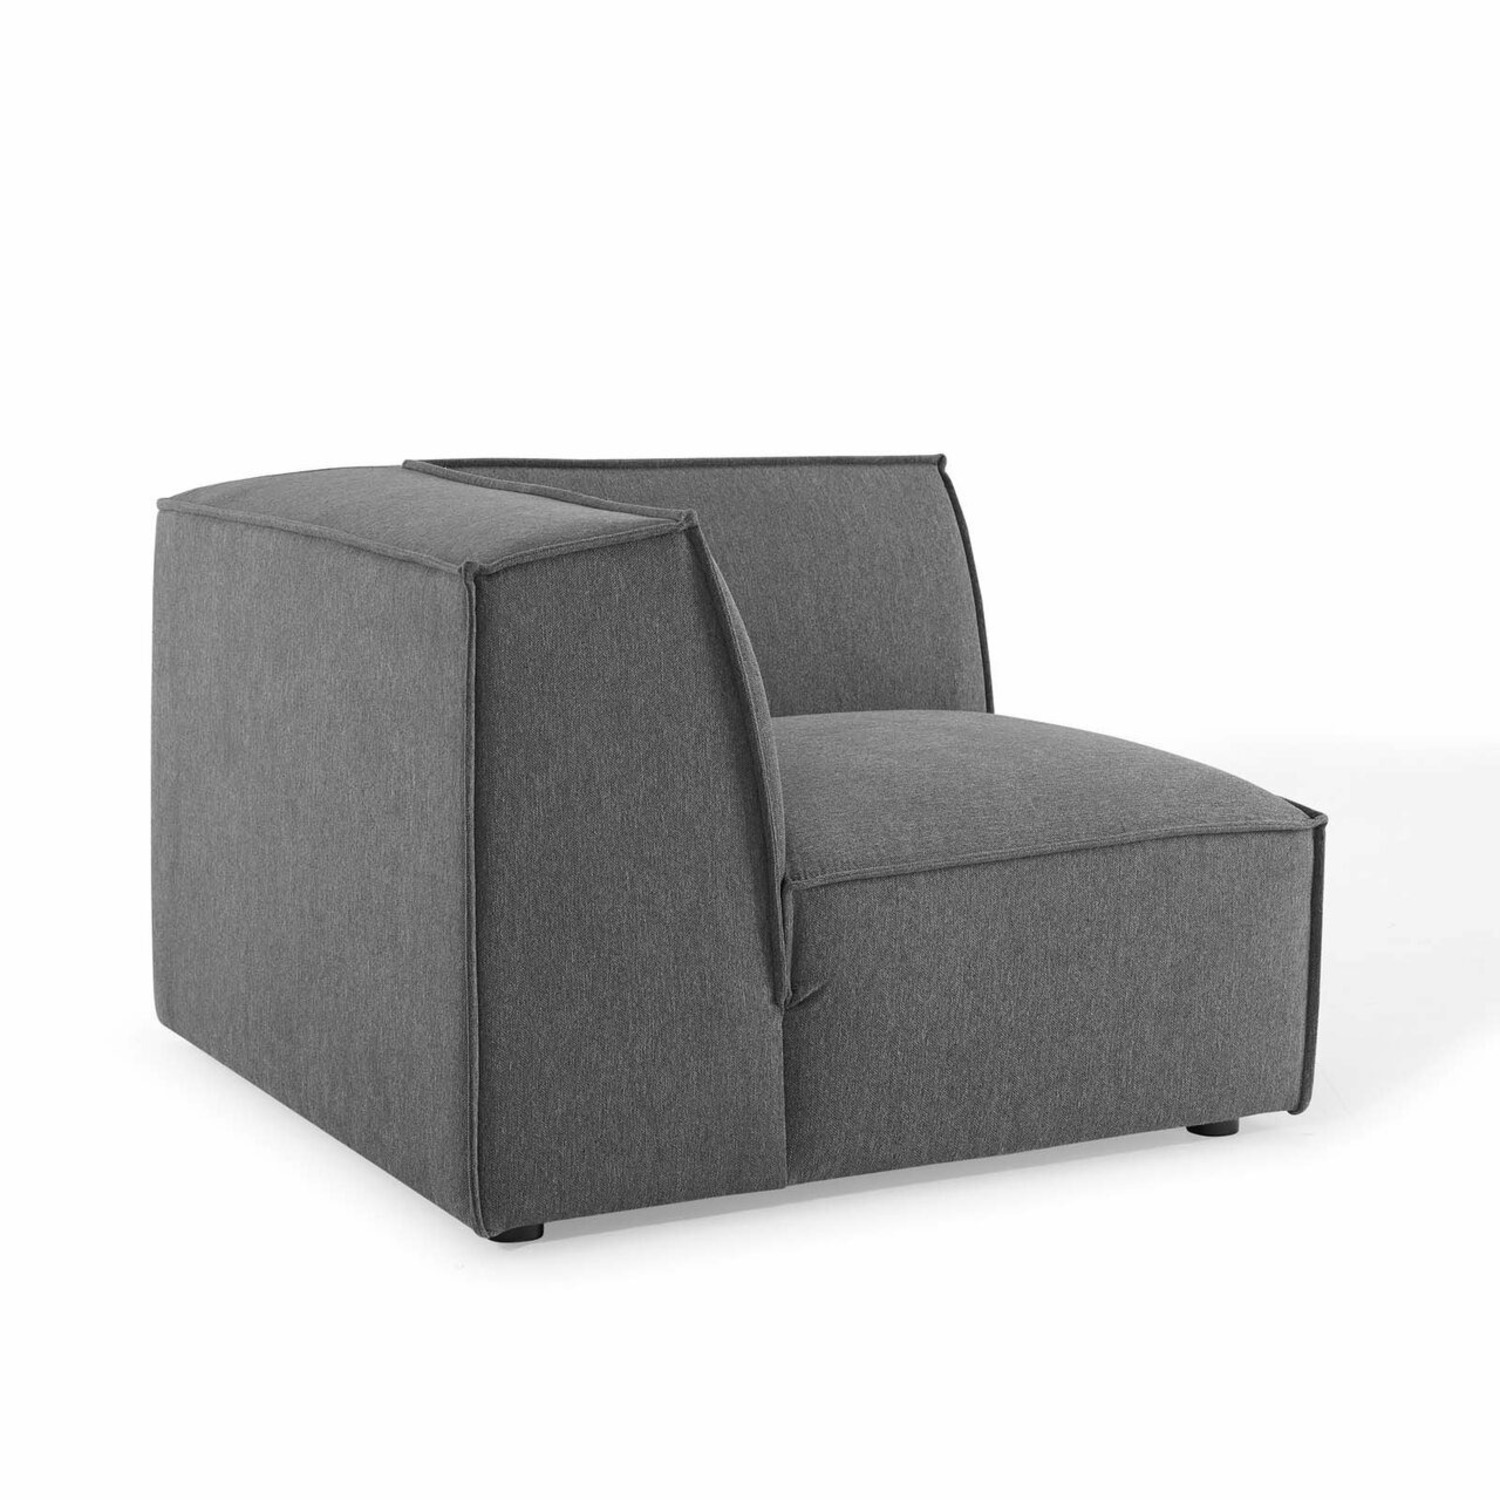 6Piece Sectional Sofa In Charcoal Polyester Fabric - image-6